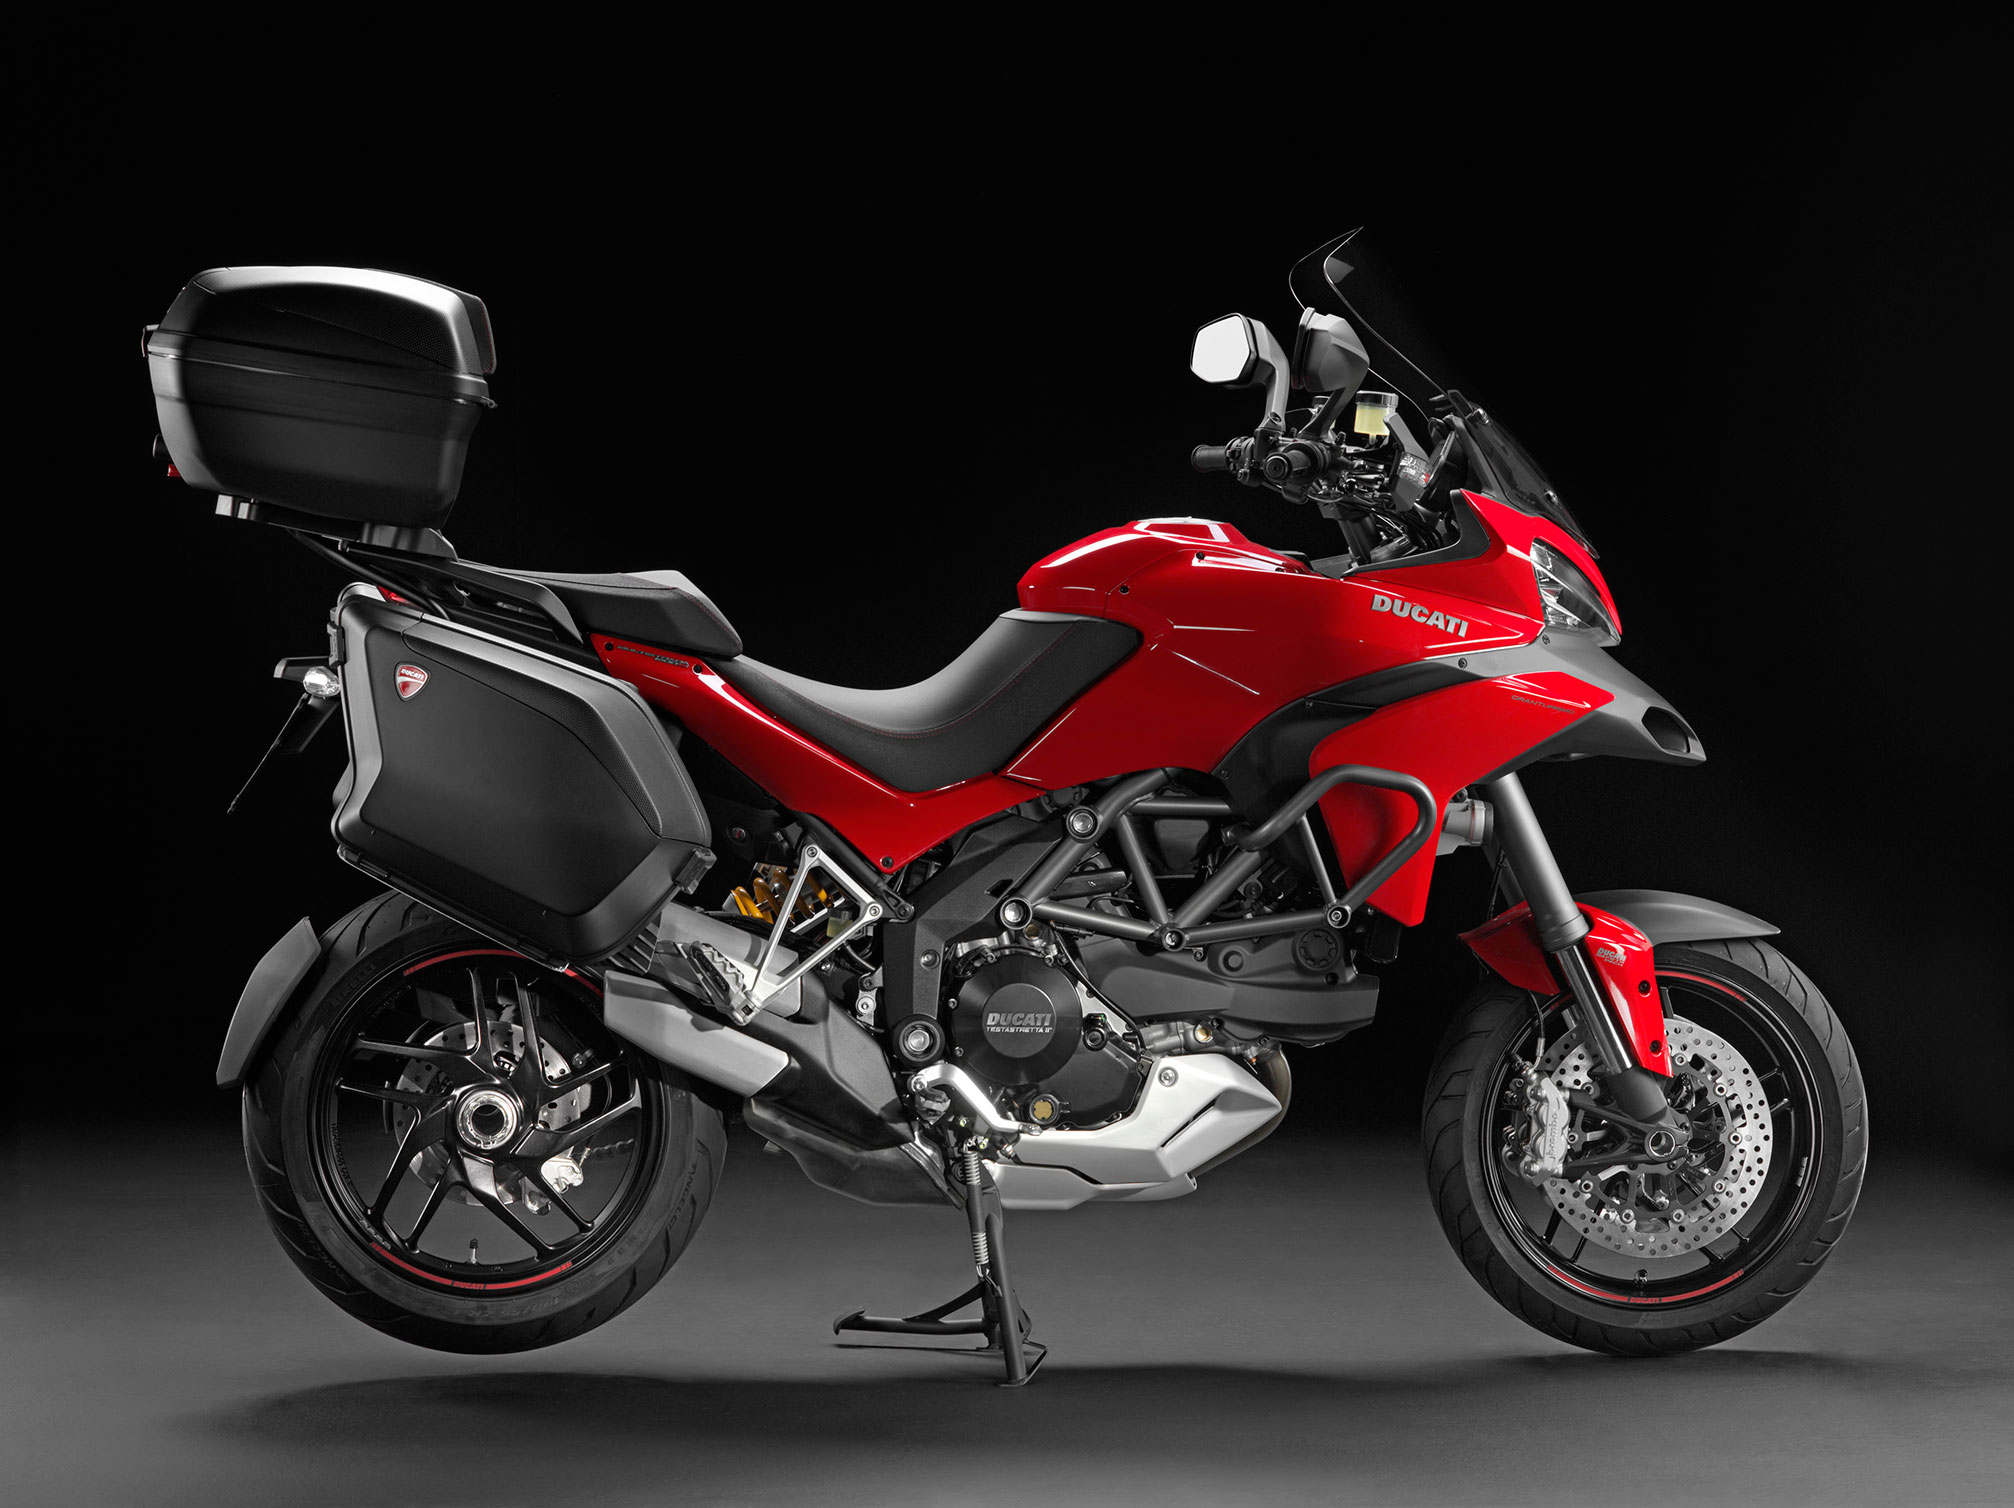 ducati multistrada 1200 s granturismo specs 2013 2014. Black Bedroom Furniture Sets. Home Design Ideas